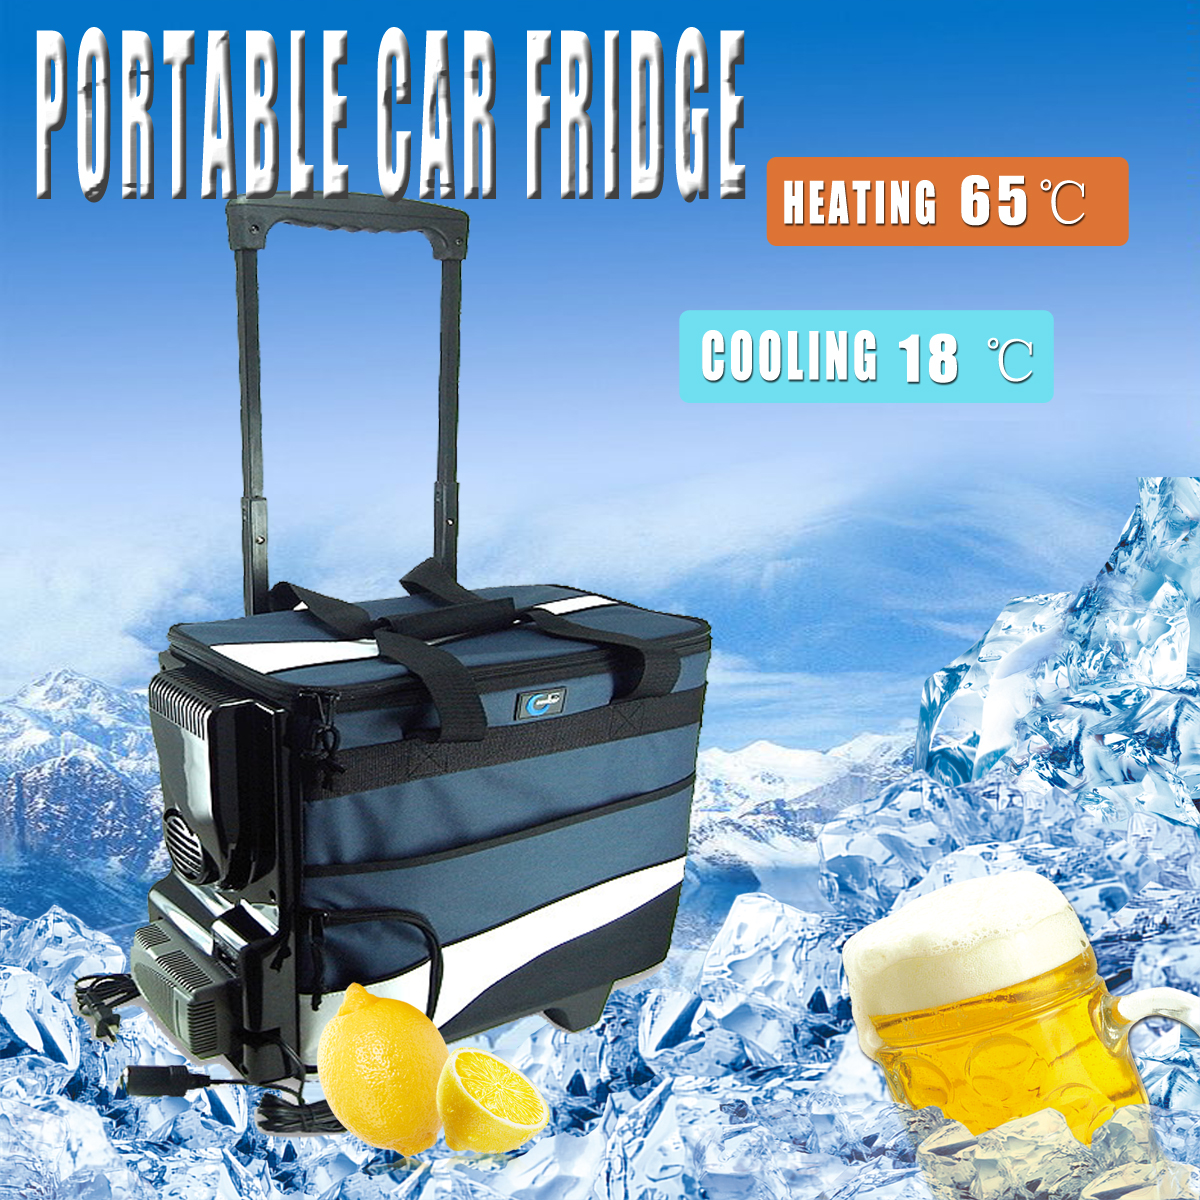 Portable Car Refrigerator Mini Lever Cold and Warm Dual-Use 12V 12L AutoTruck Home Freezer Travel Car Refrigerator Cooling 12l car refrigerator portable pig semen thermostat machine mini household livestock refrigerator 12l4